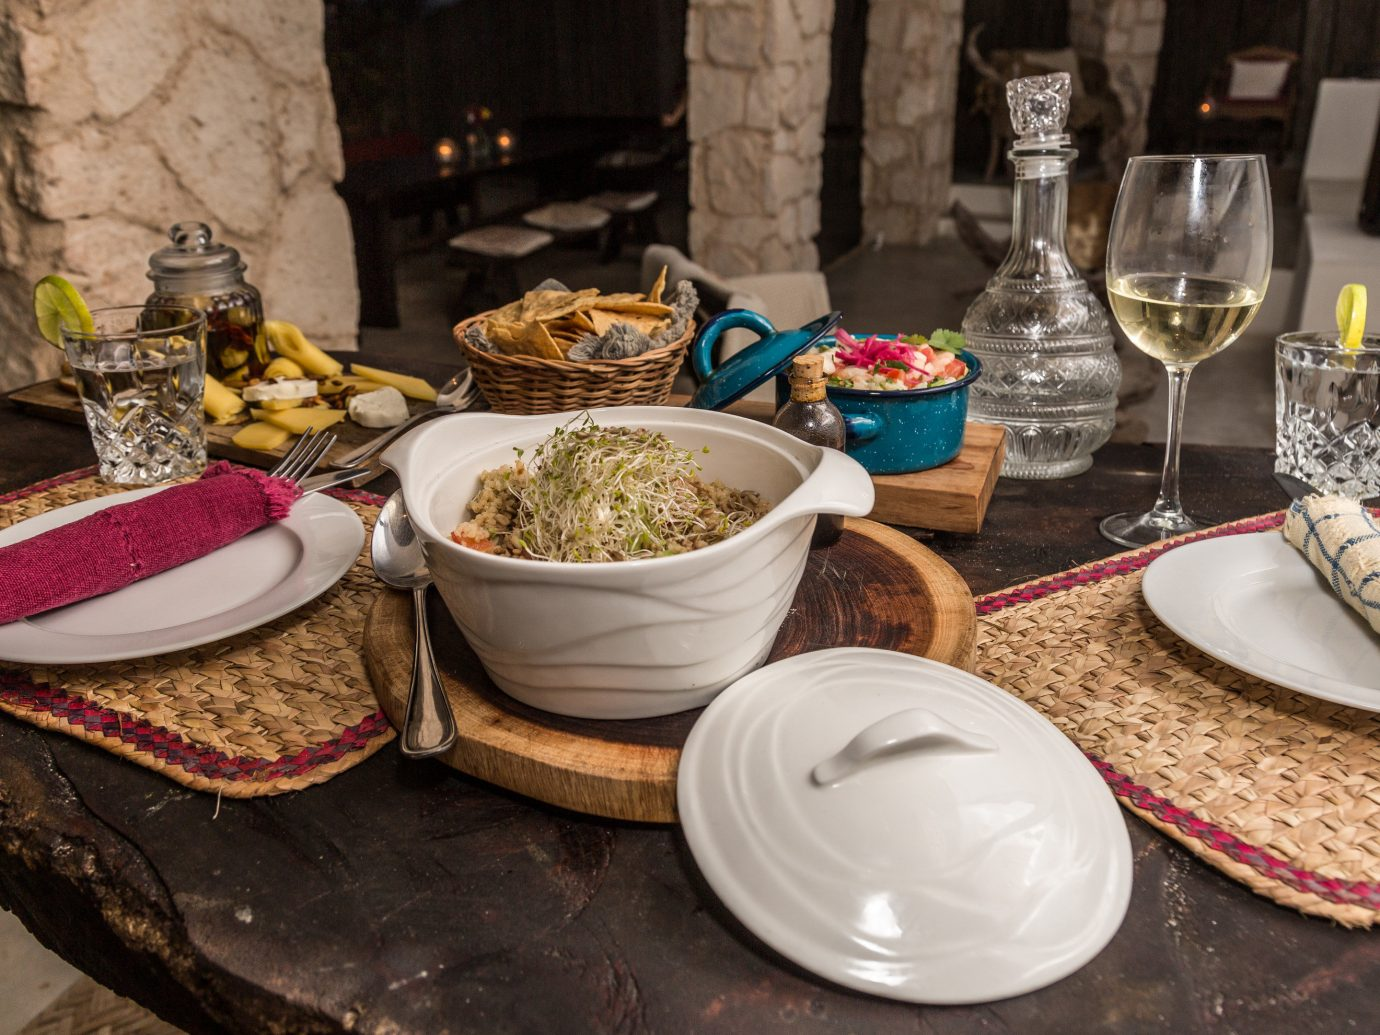 Boutique Hotels Hotels Mexico Tulum meal food tableware brunch table dish breakfast cuisine supper meat